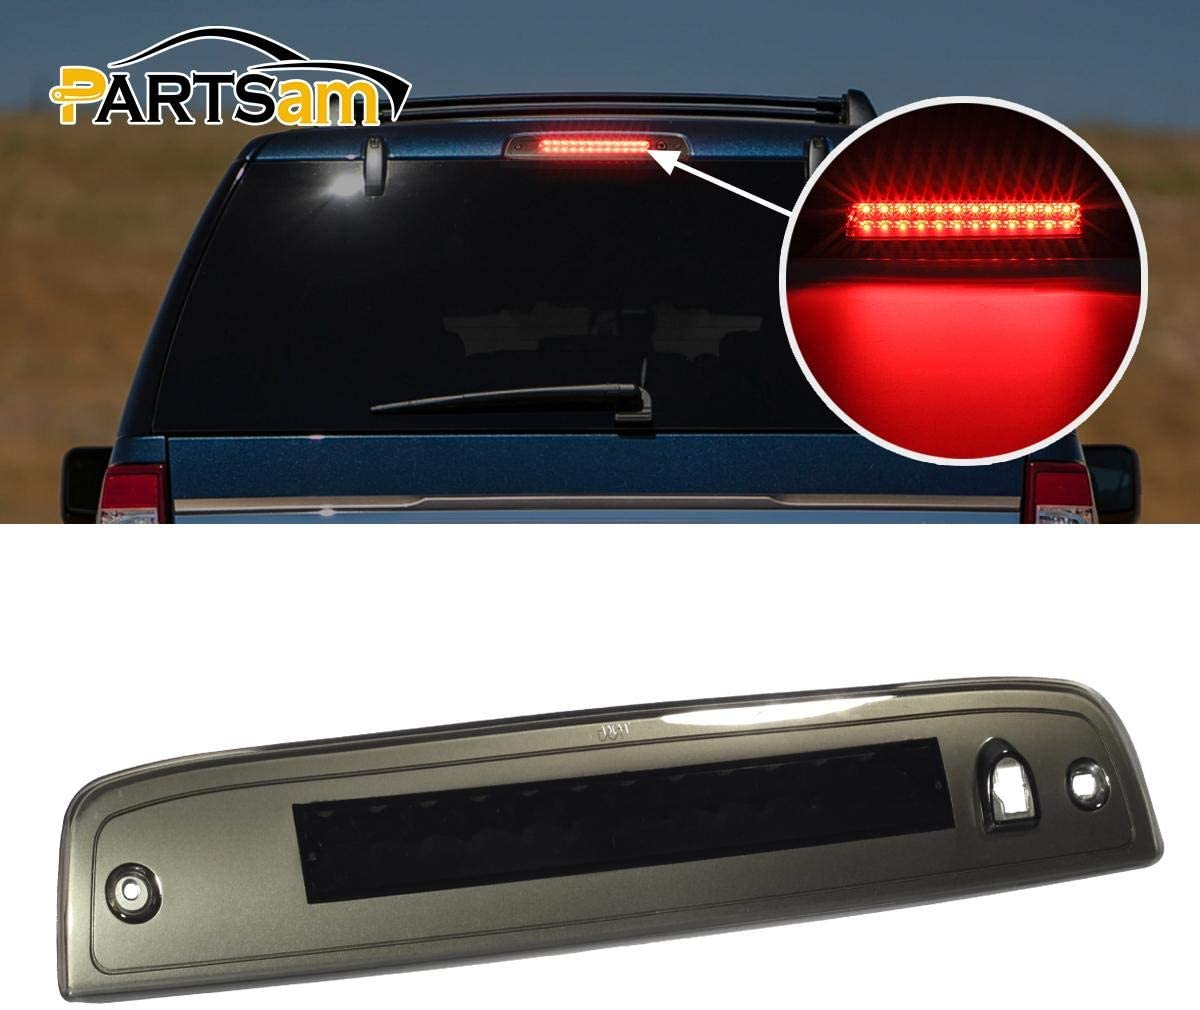 Partsam High Mount Stop Light Third 3RD Brake Light Replacement for Expedition and Lincoln Navigator 2003-2016 Rear Top Roof Cab Center Mount Stop Tail Light Lamp (Black Housing Smoke Lens)